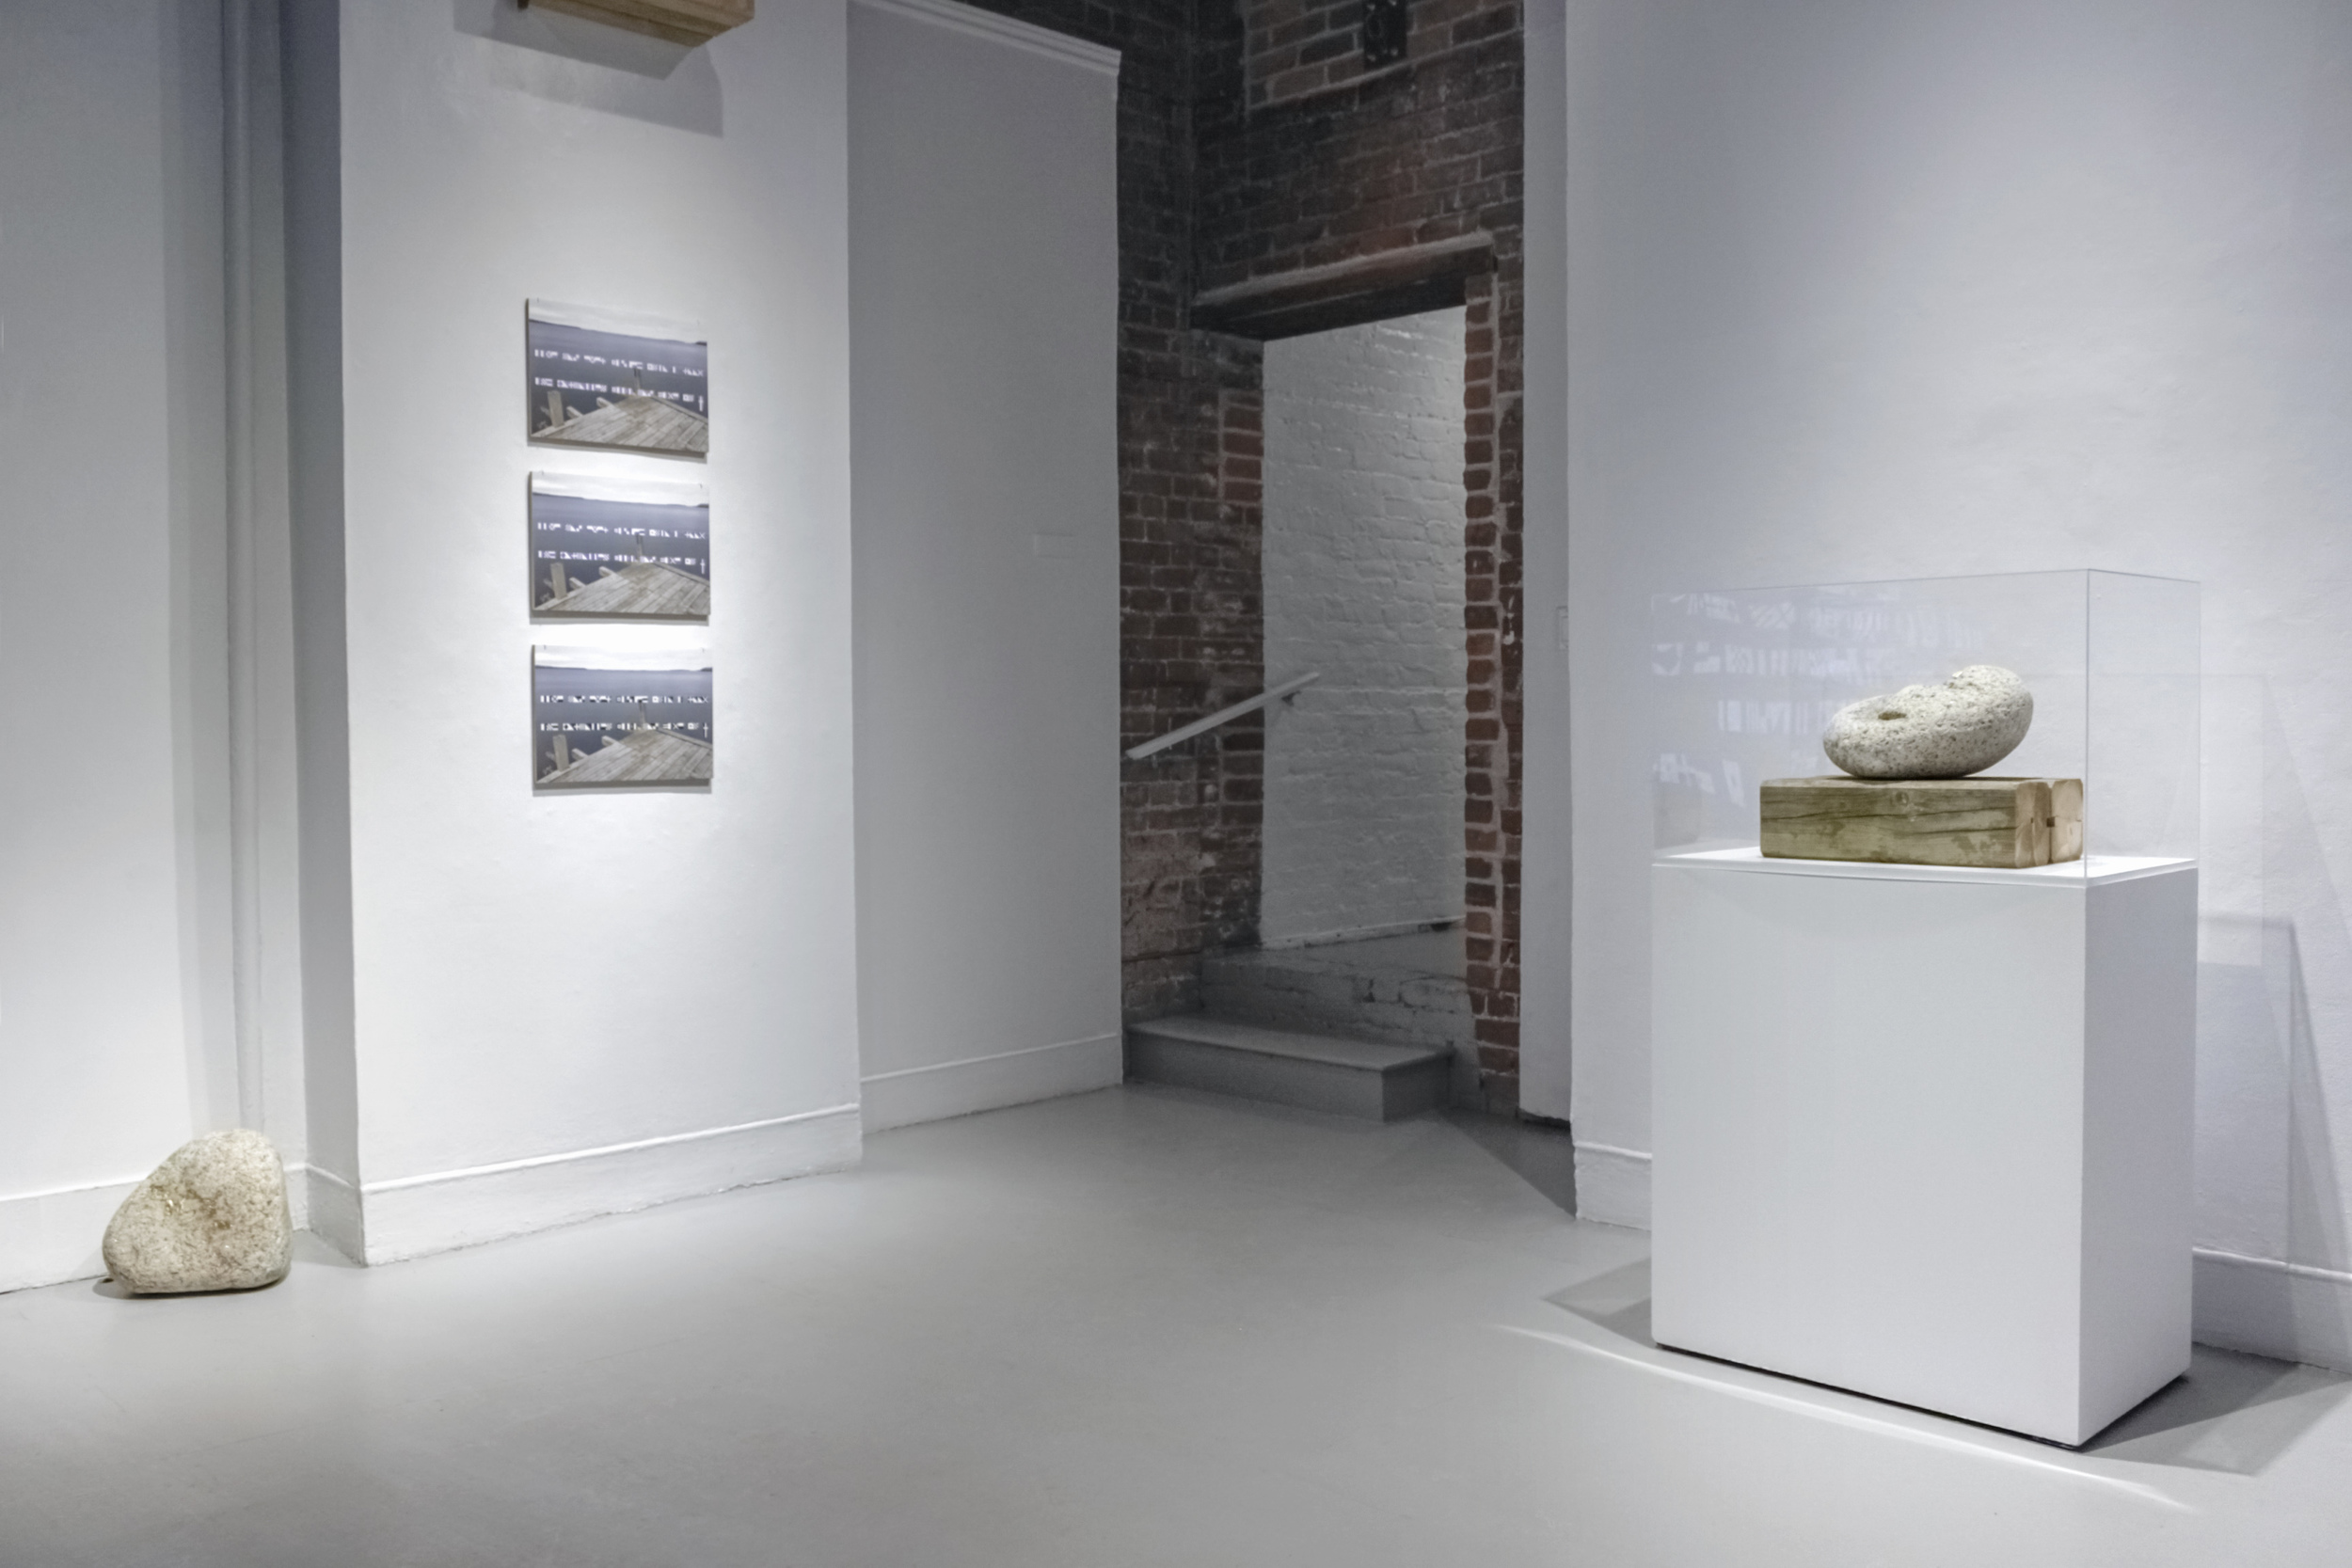 Vorspiel , 2016. Exhibition installation view with stones in gallery.